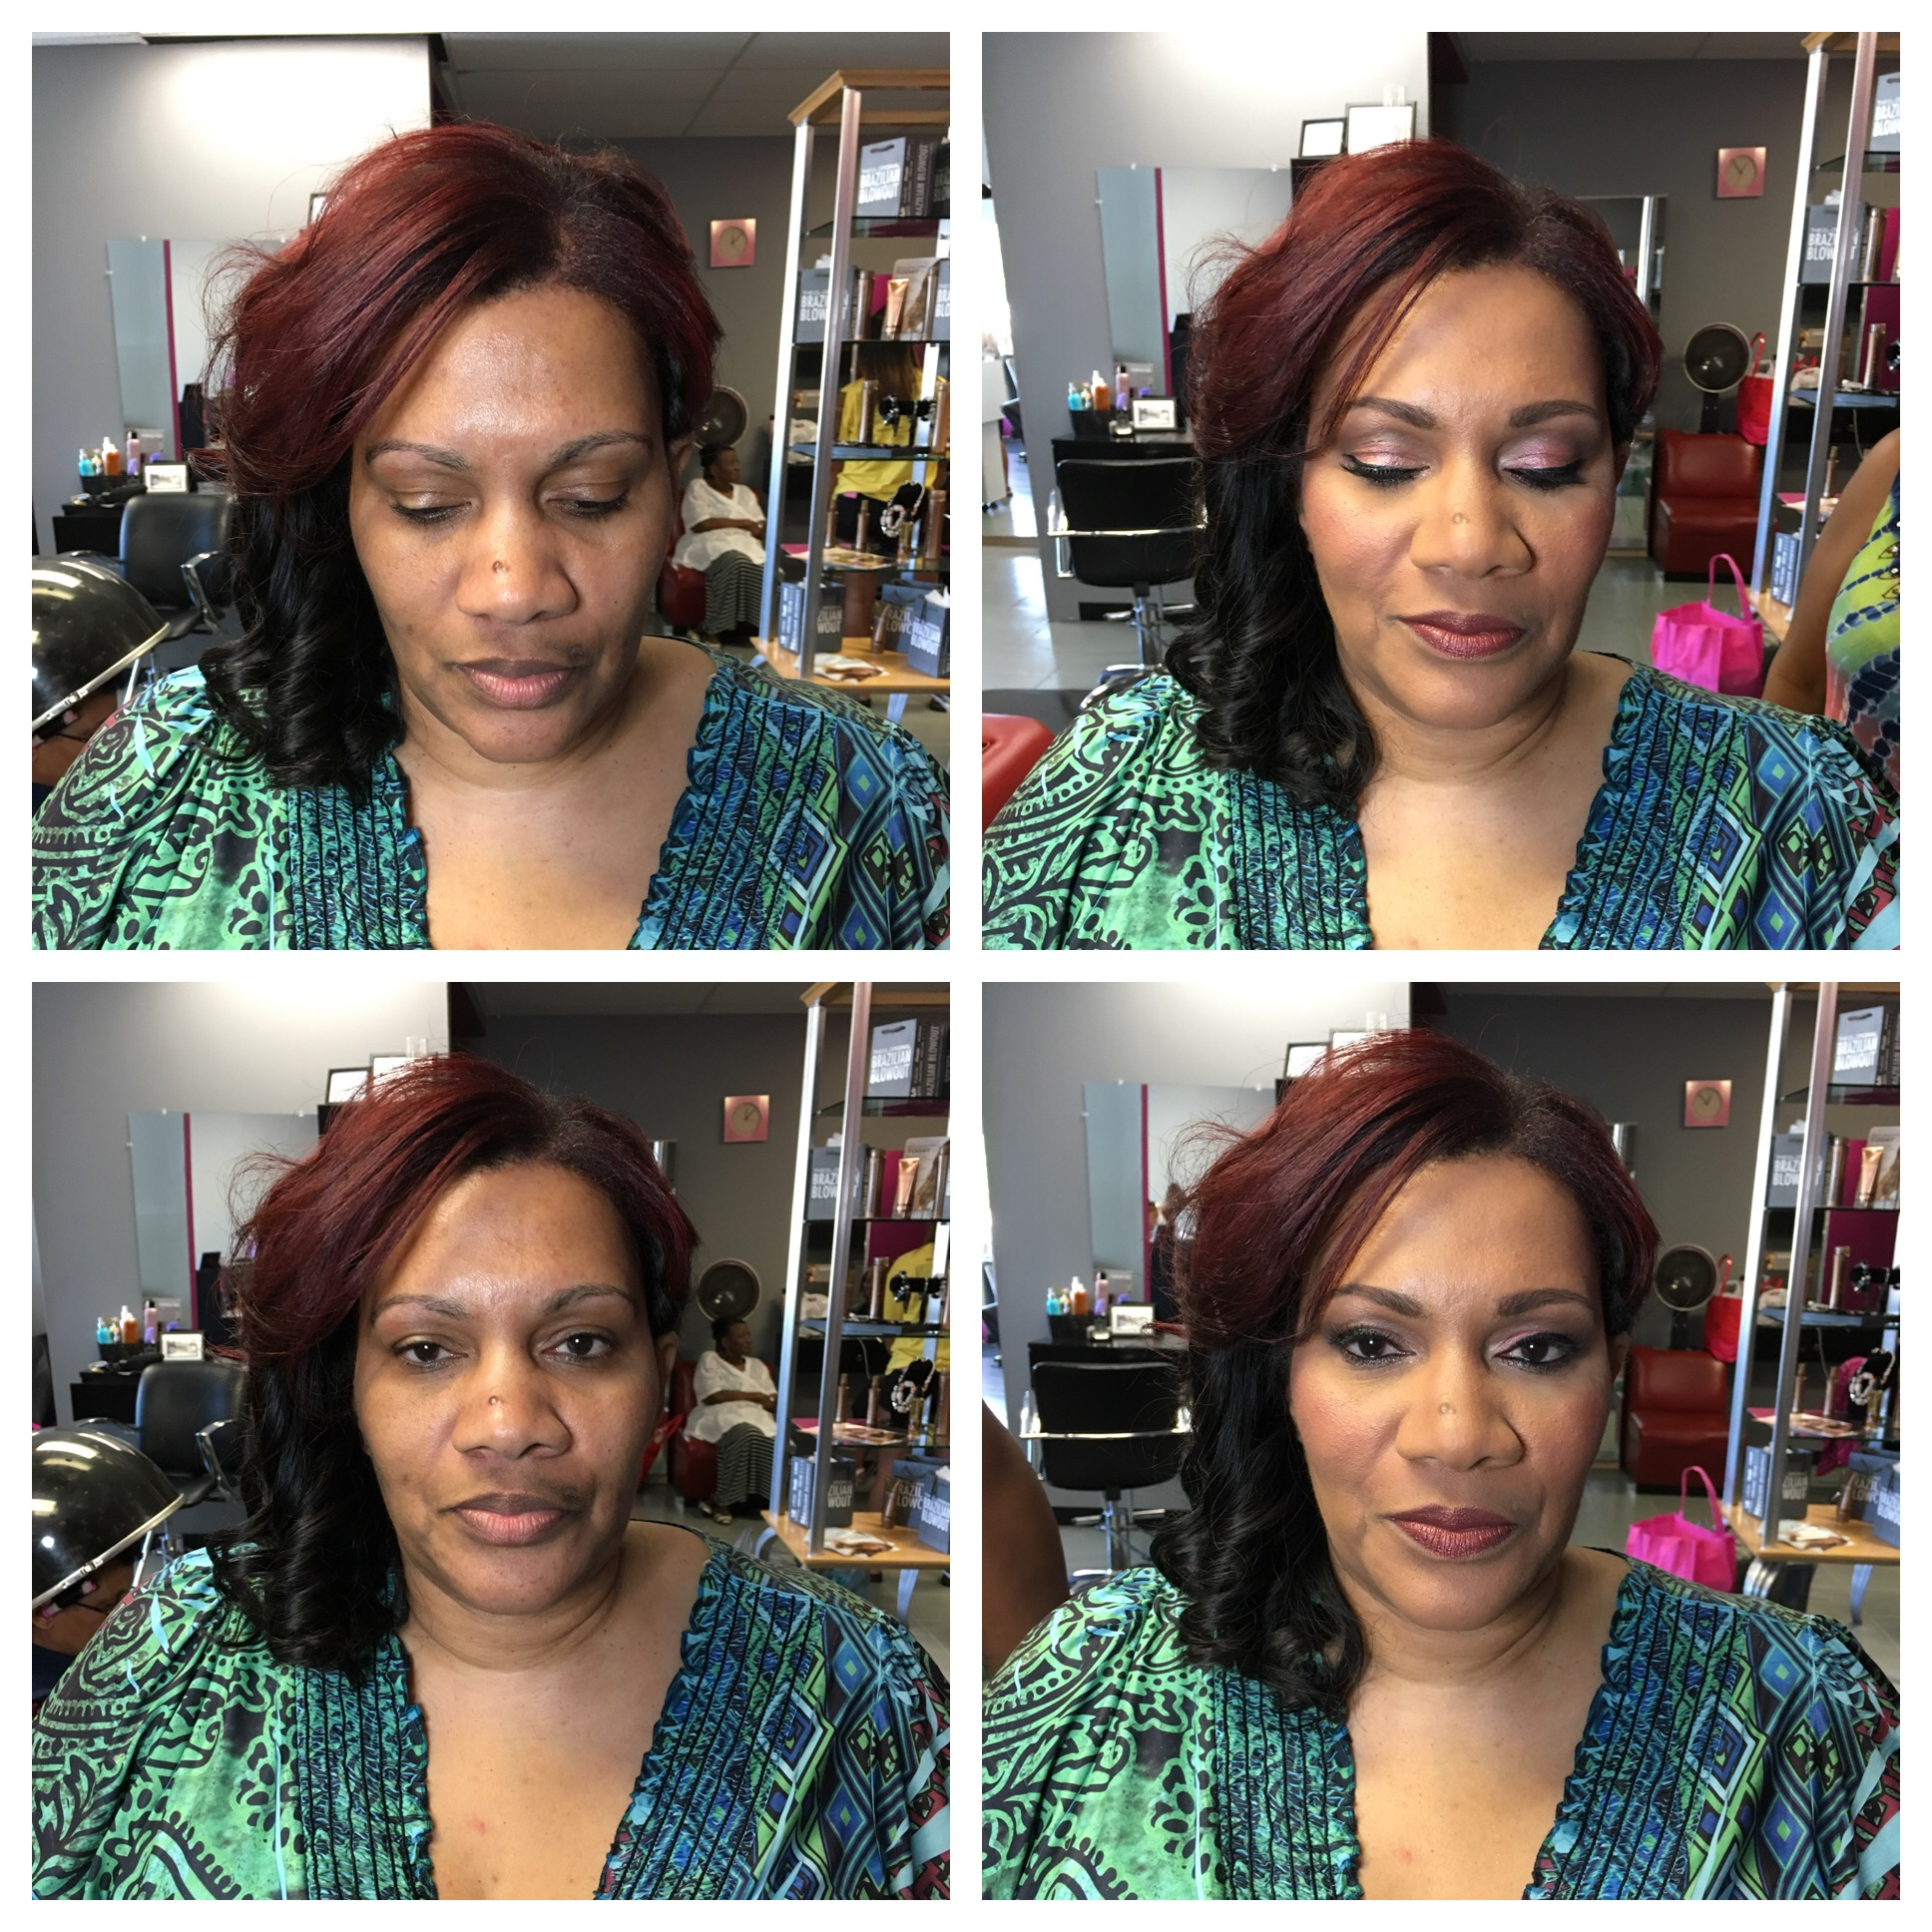 makeup done by Suna/hair done by Deanna